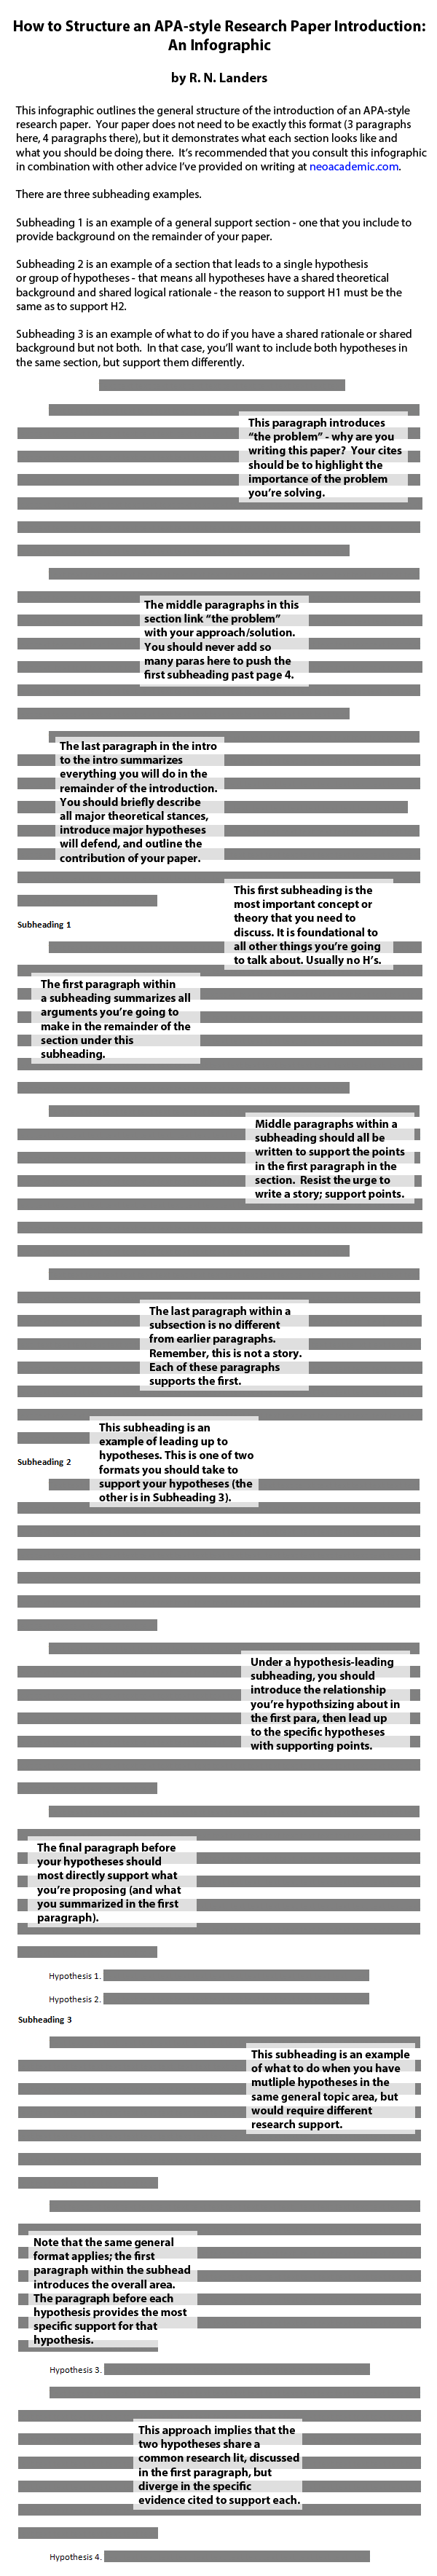 007 Intro Infographic2 Research Paper Writingn Introduction To Top Writing An A Steps In Full